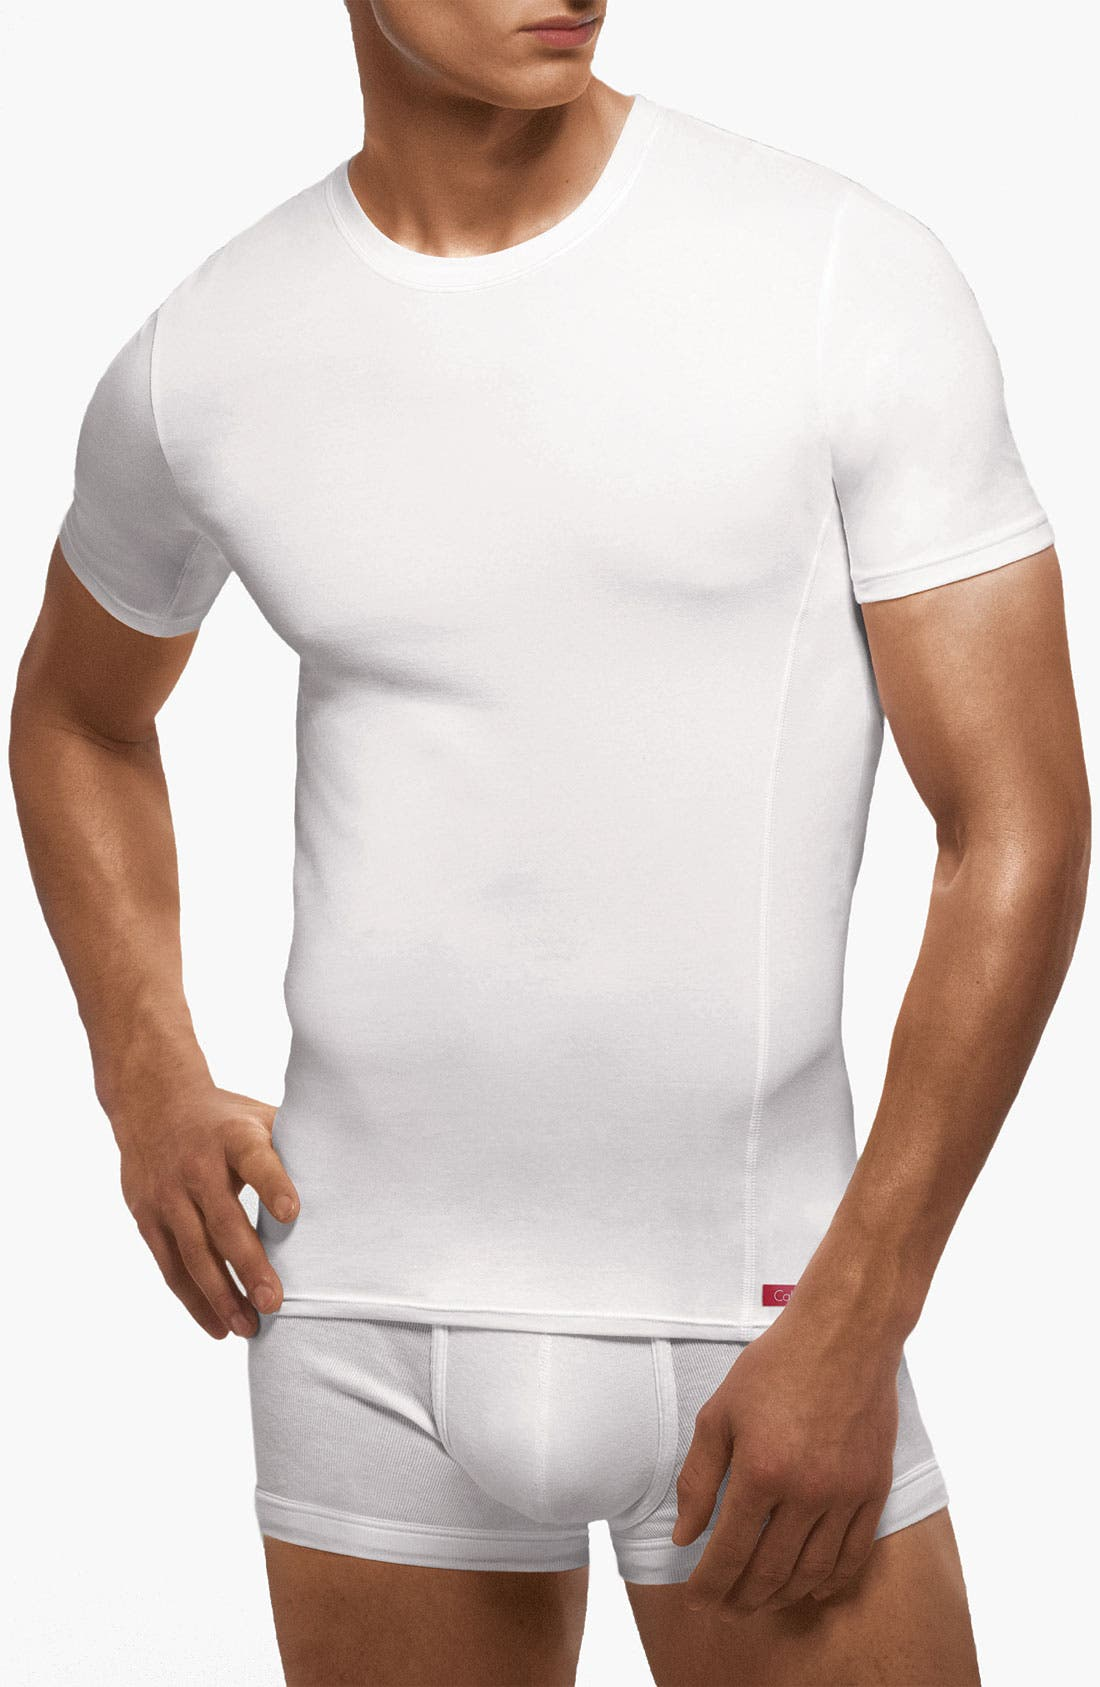 Alternate Image 1 Selected - Calvin Klein 'Pro Stretch' Slim Fit T-Shirt